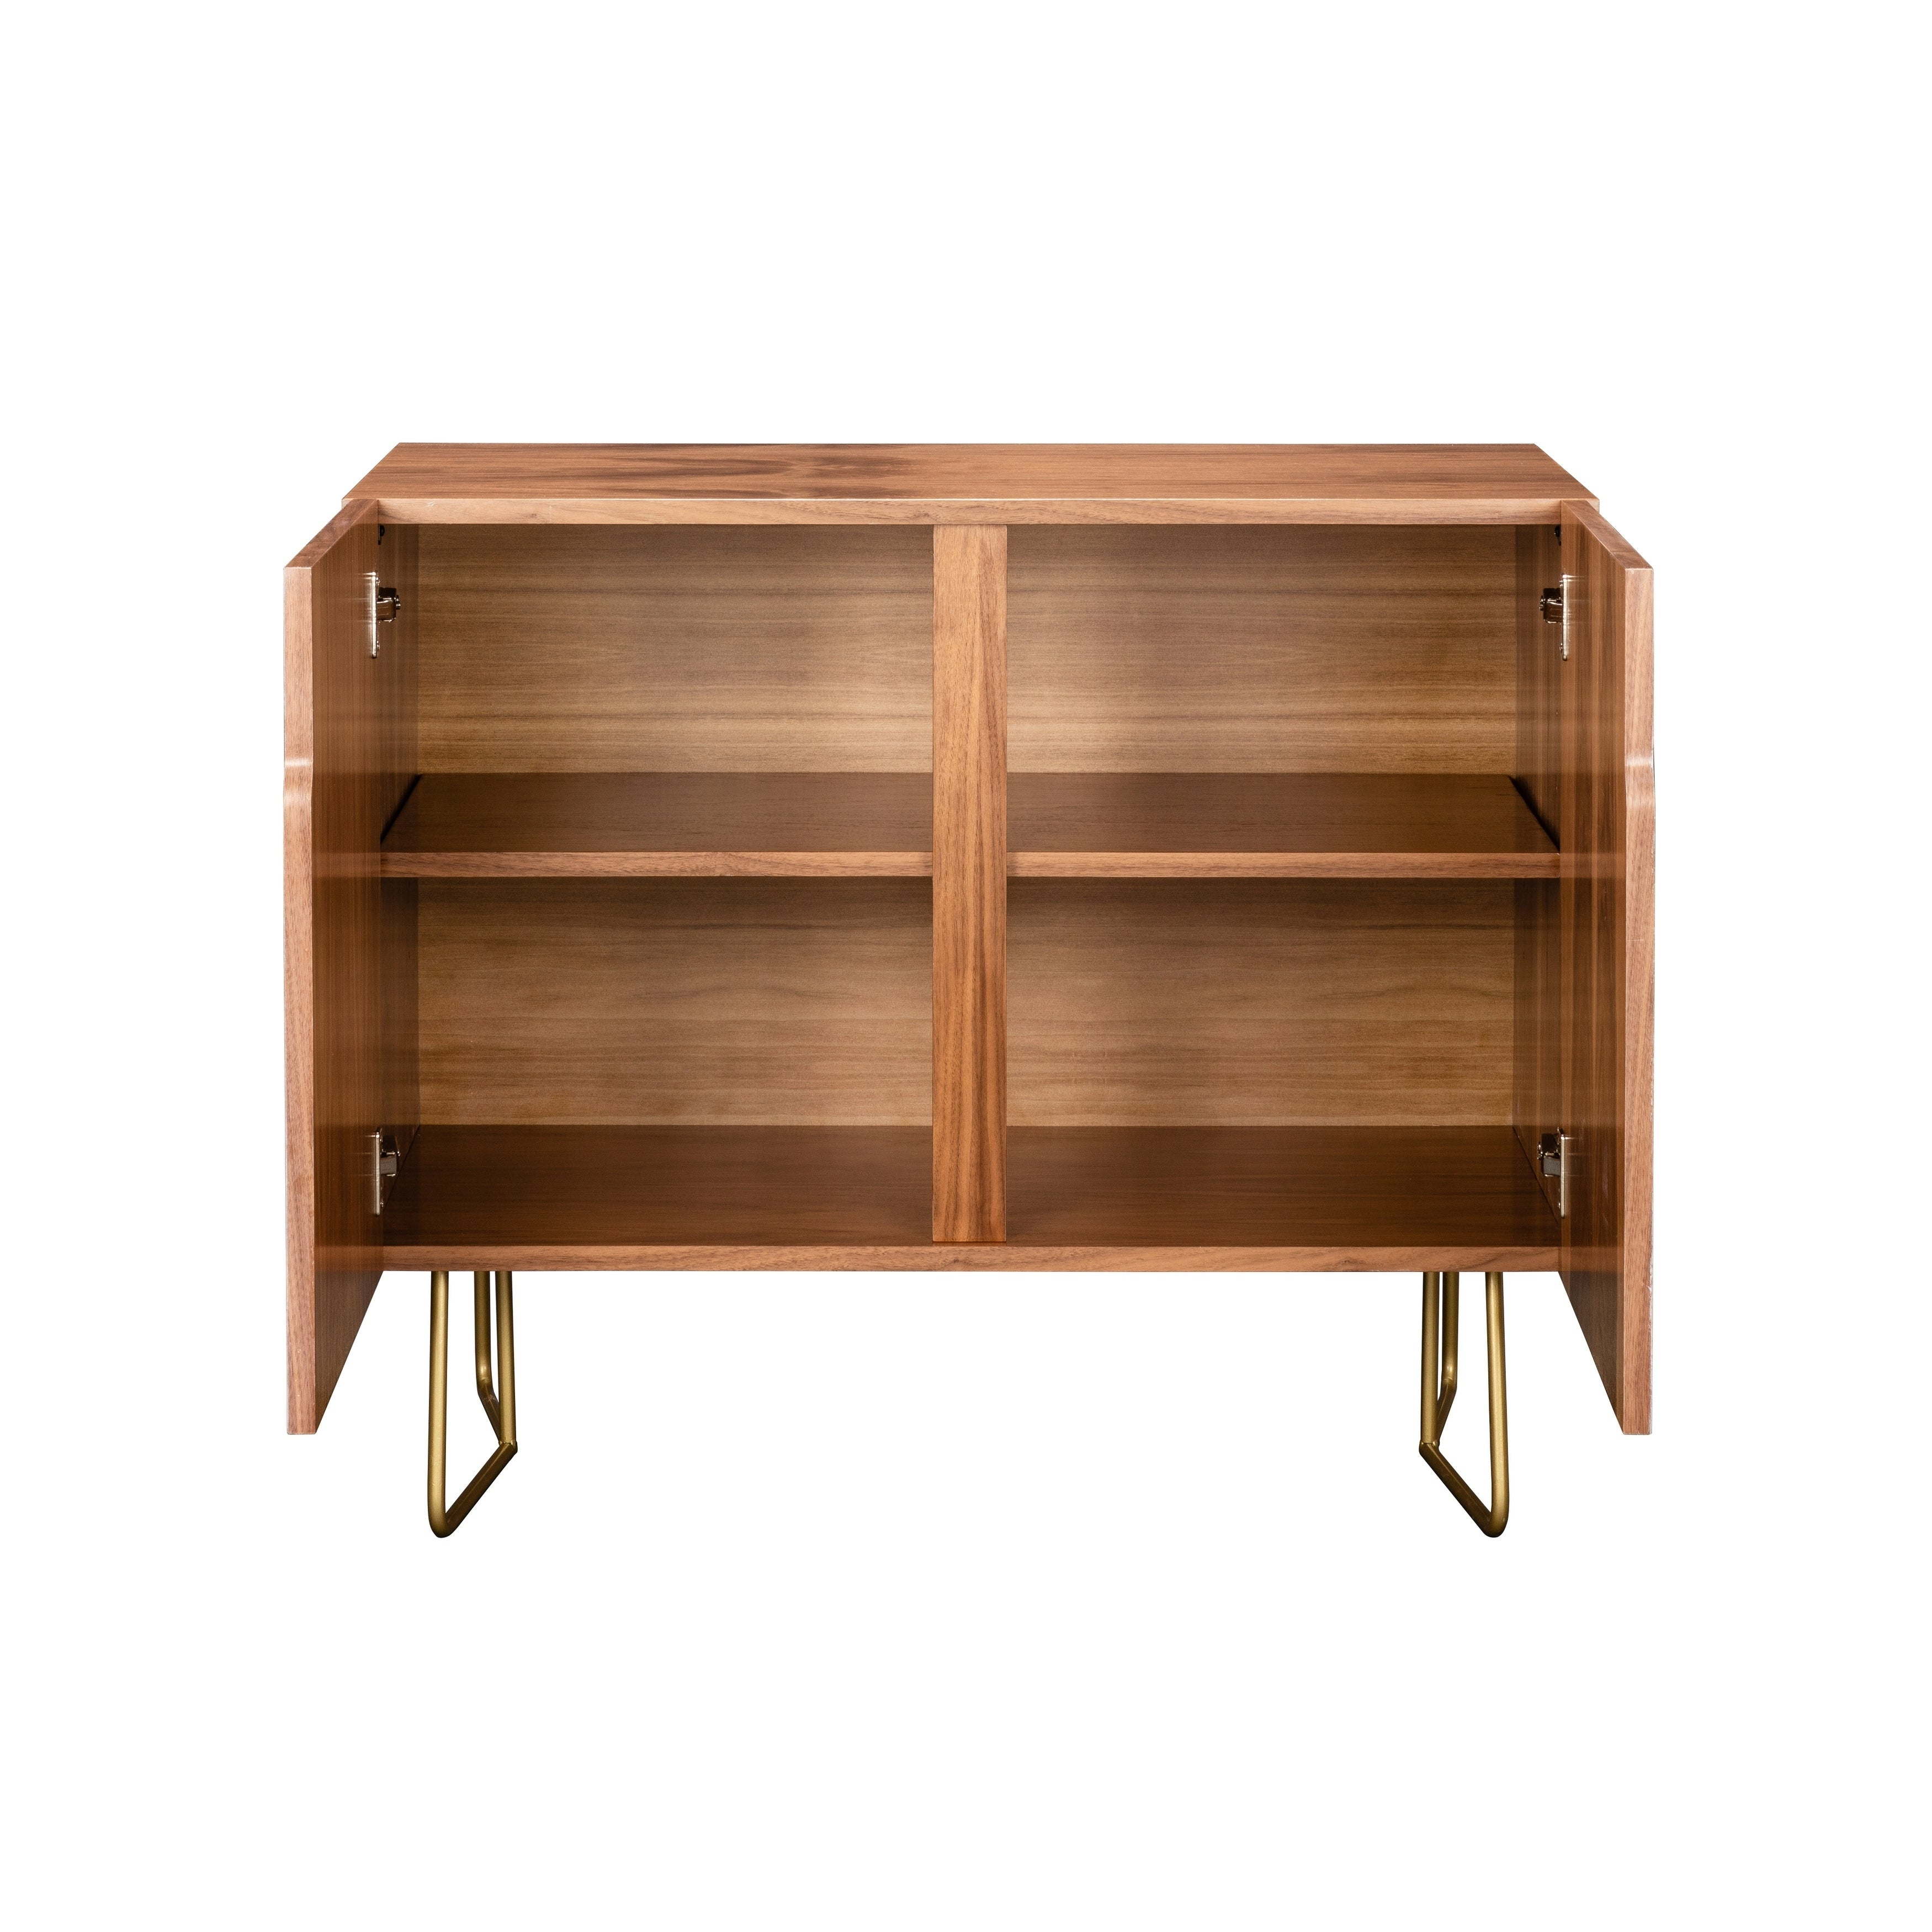 Deny Designs Colorful Leaves Credenza (Birch Or Walnut, 2 Leg Options) In Colorful Leaves Credenzas (Gallery 7 of 30)